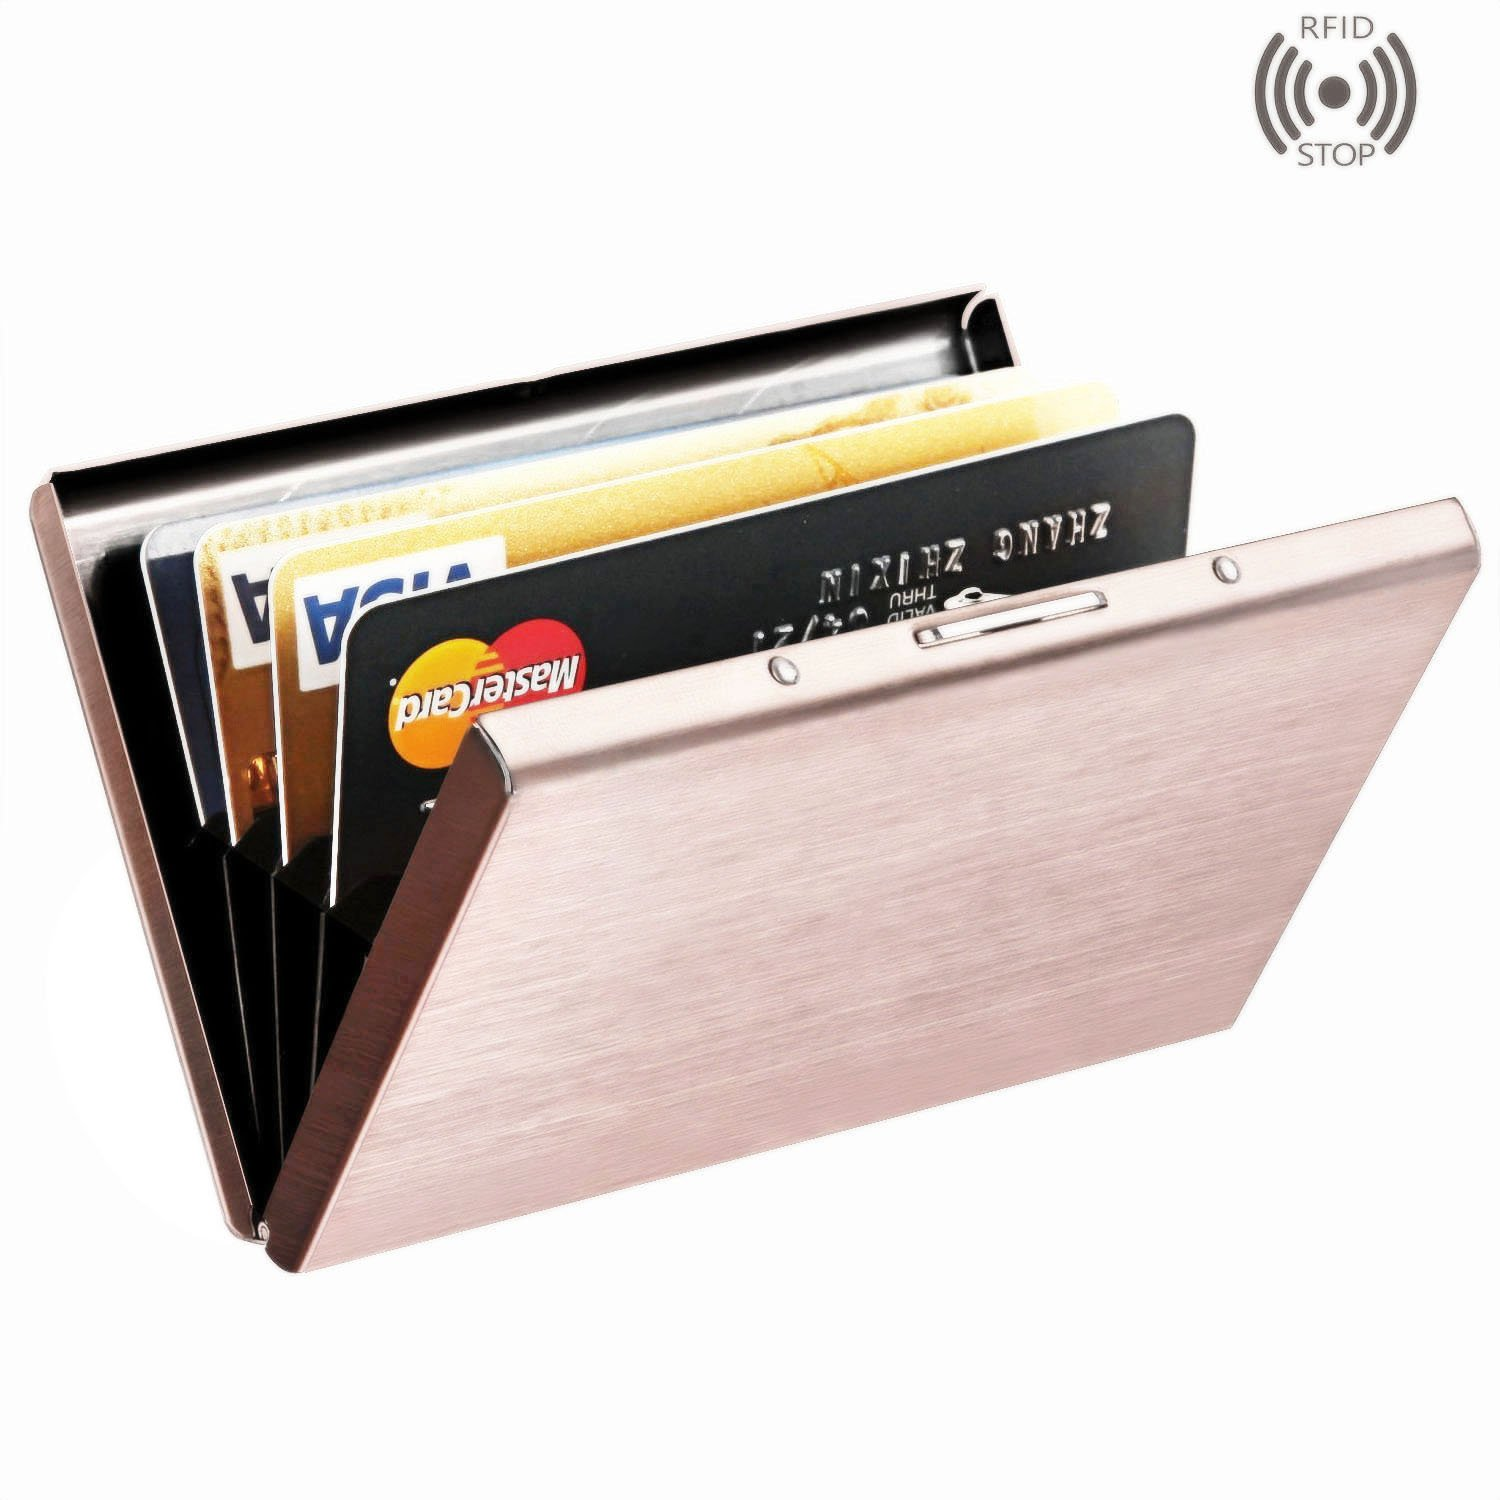 Best Rfid Blocking Credit Card Holder, Maxgear™ Stainless Steel Card Holder  Case For Travel And Work, Steel Metal Slim Wallet , Credit Card Case For